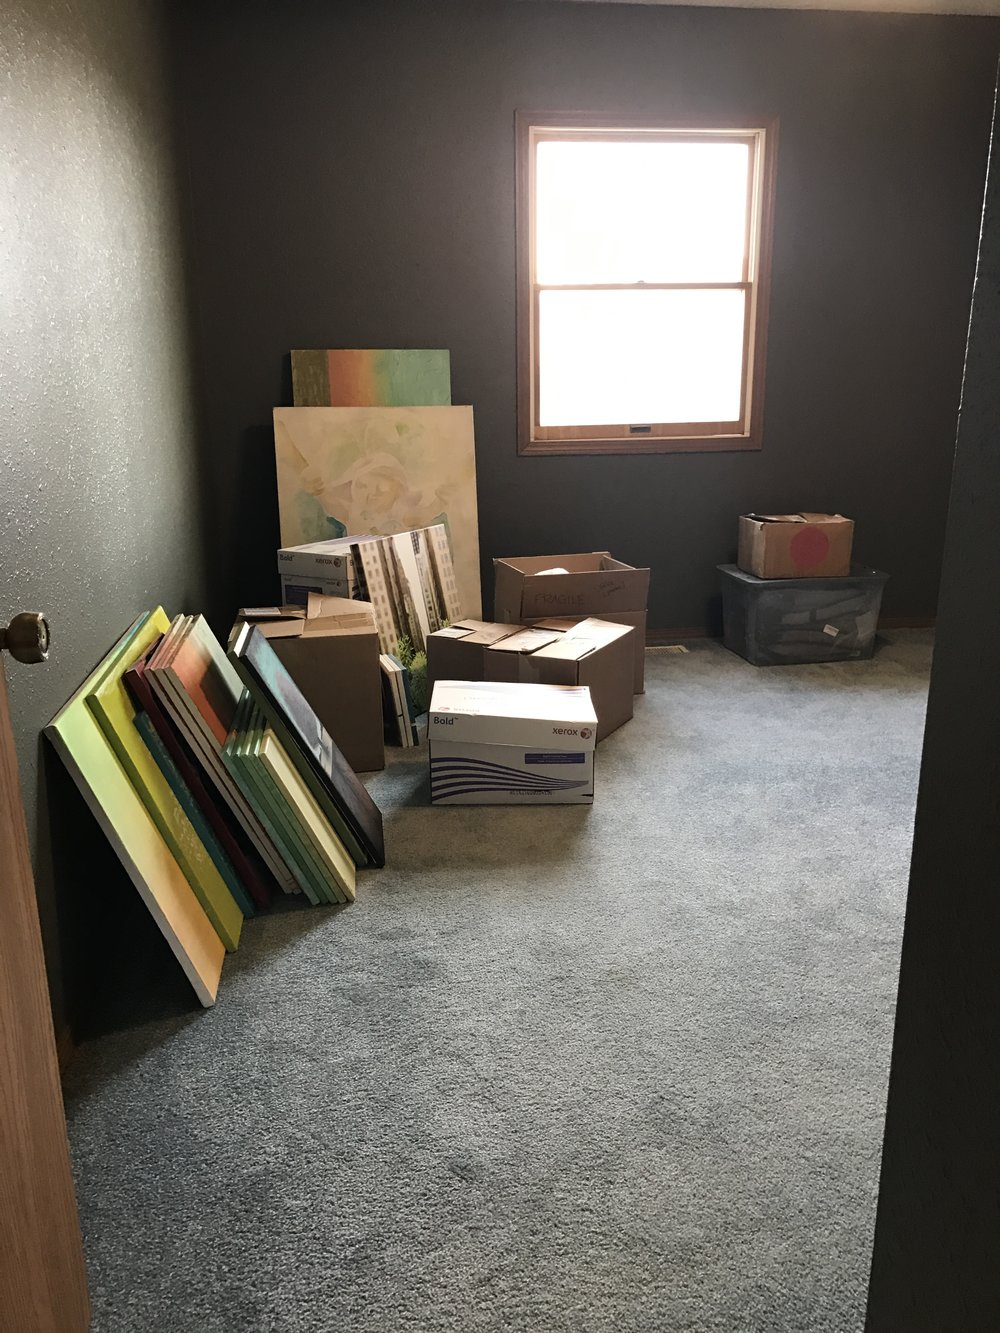 Missy_Robbs_GDP_Home_Office_Boxes.JPG